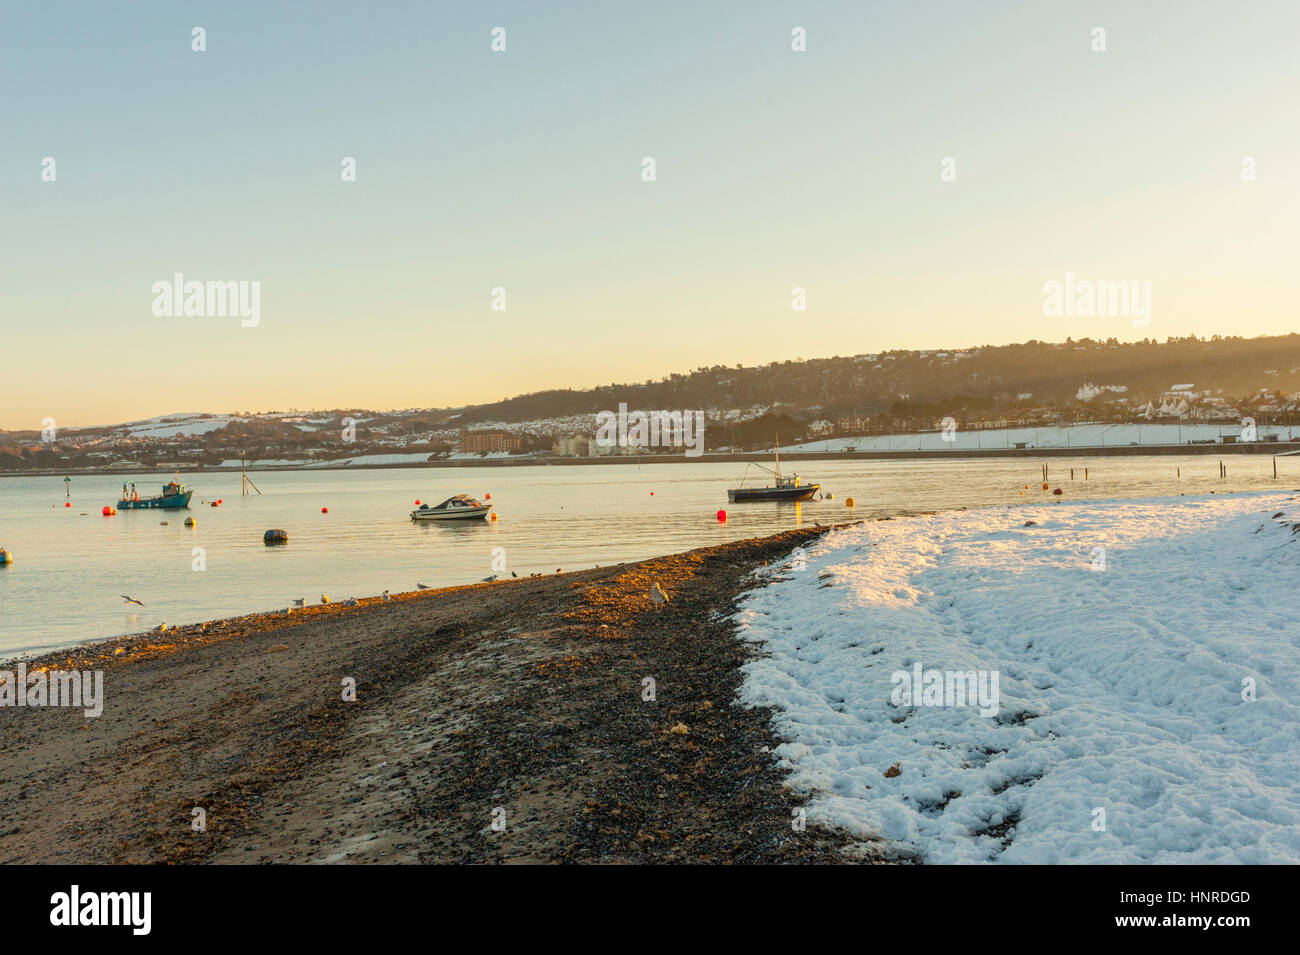 The beach at Rhos on sea covered in snow after a winter blizzard Stock Photo